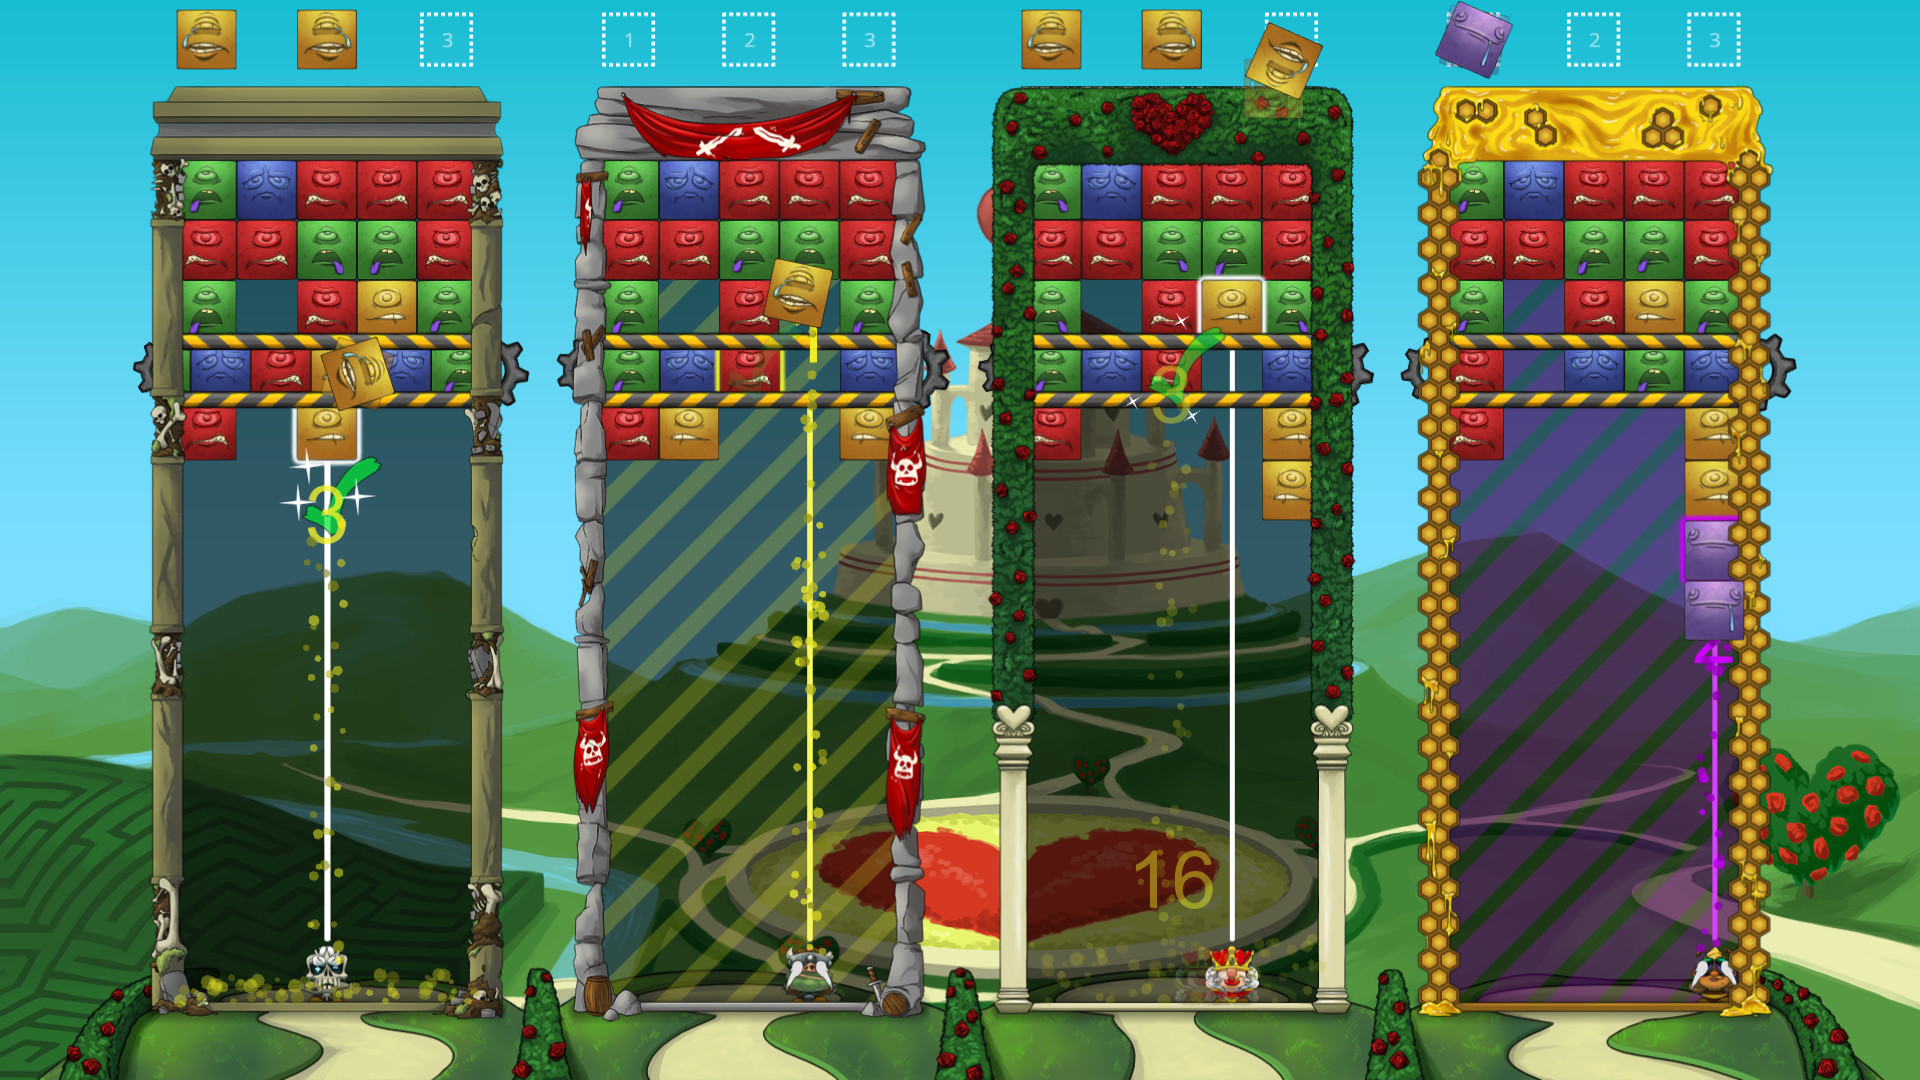 Tumblestone'—'Tetris Attack', Eat Your Heart Out | Goomba Stomp